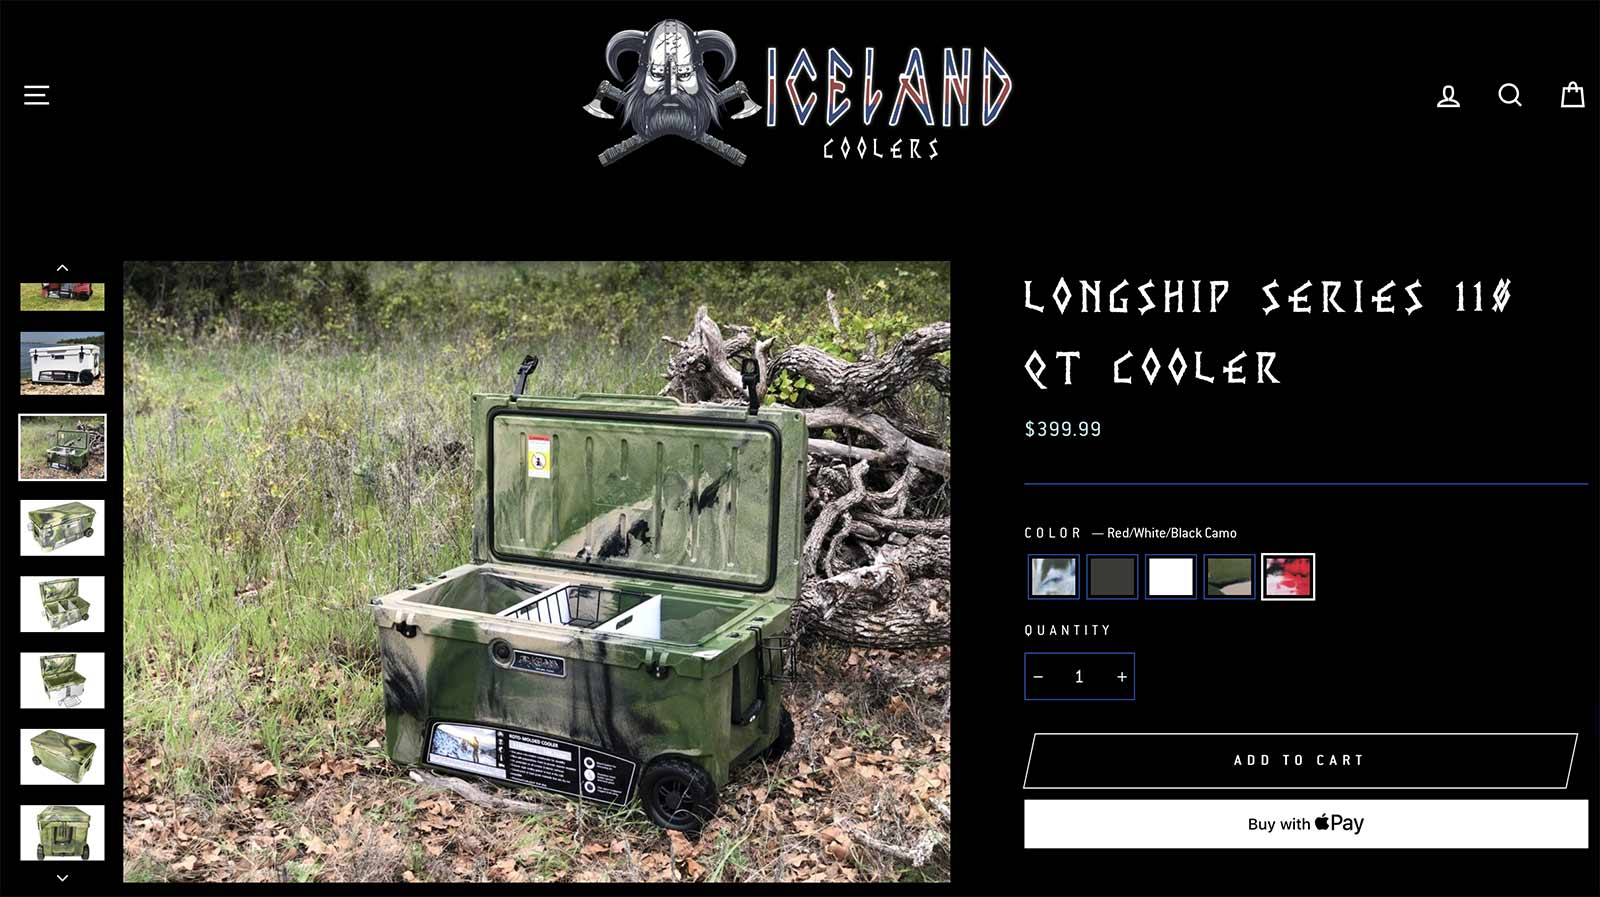 Iceland Coolers product page